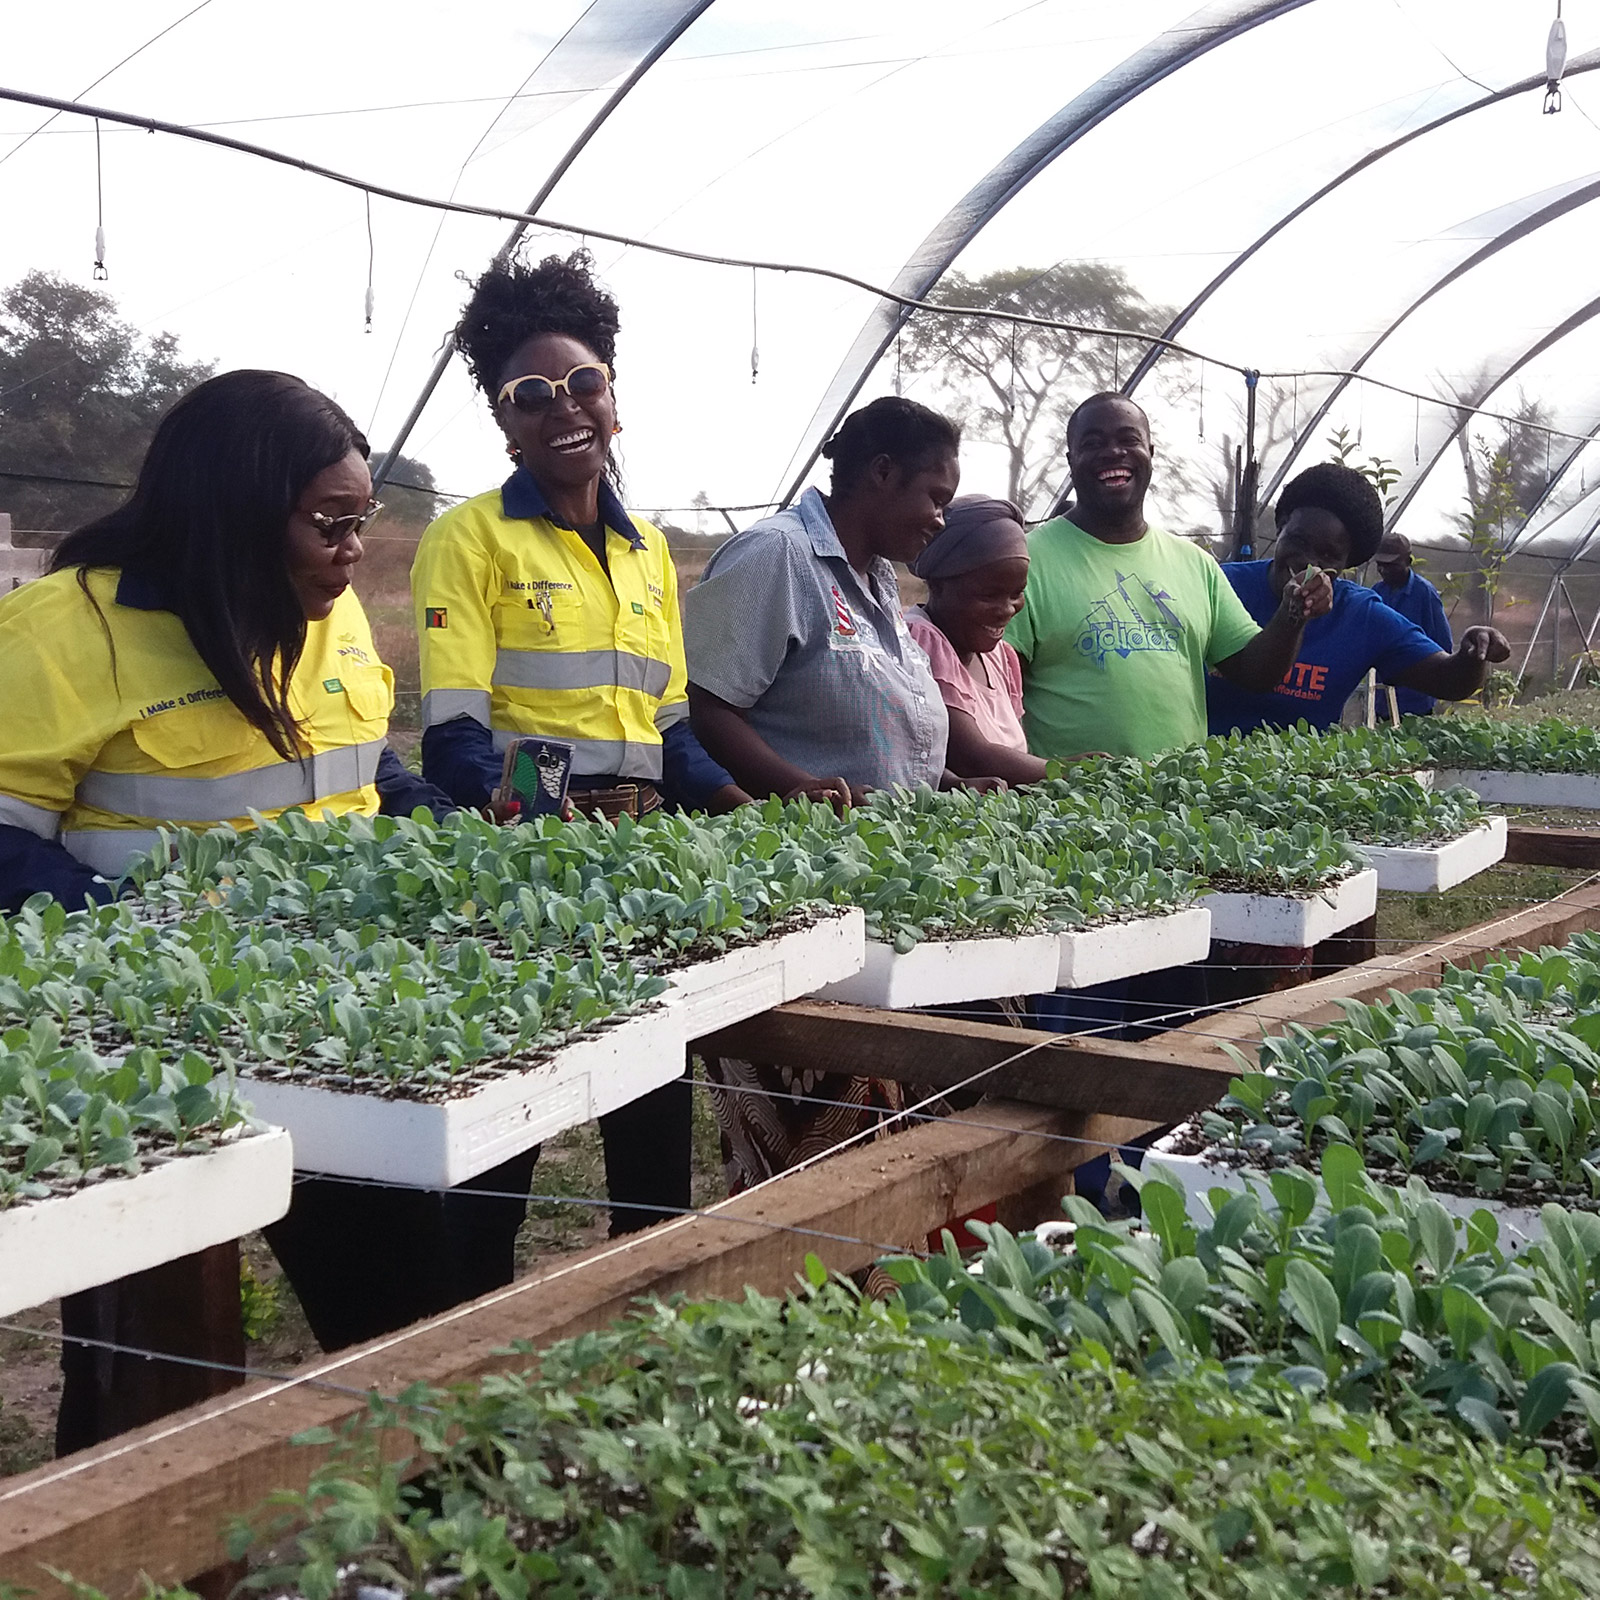 At the Lumwana copper mine in Zambia, a business empowerment program has been established by Barrick to help the women from the local communities grow vegetables as an additional source of income.